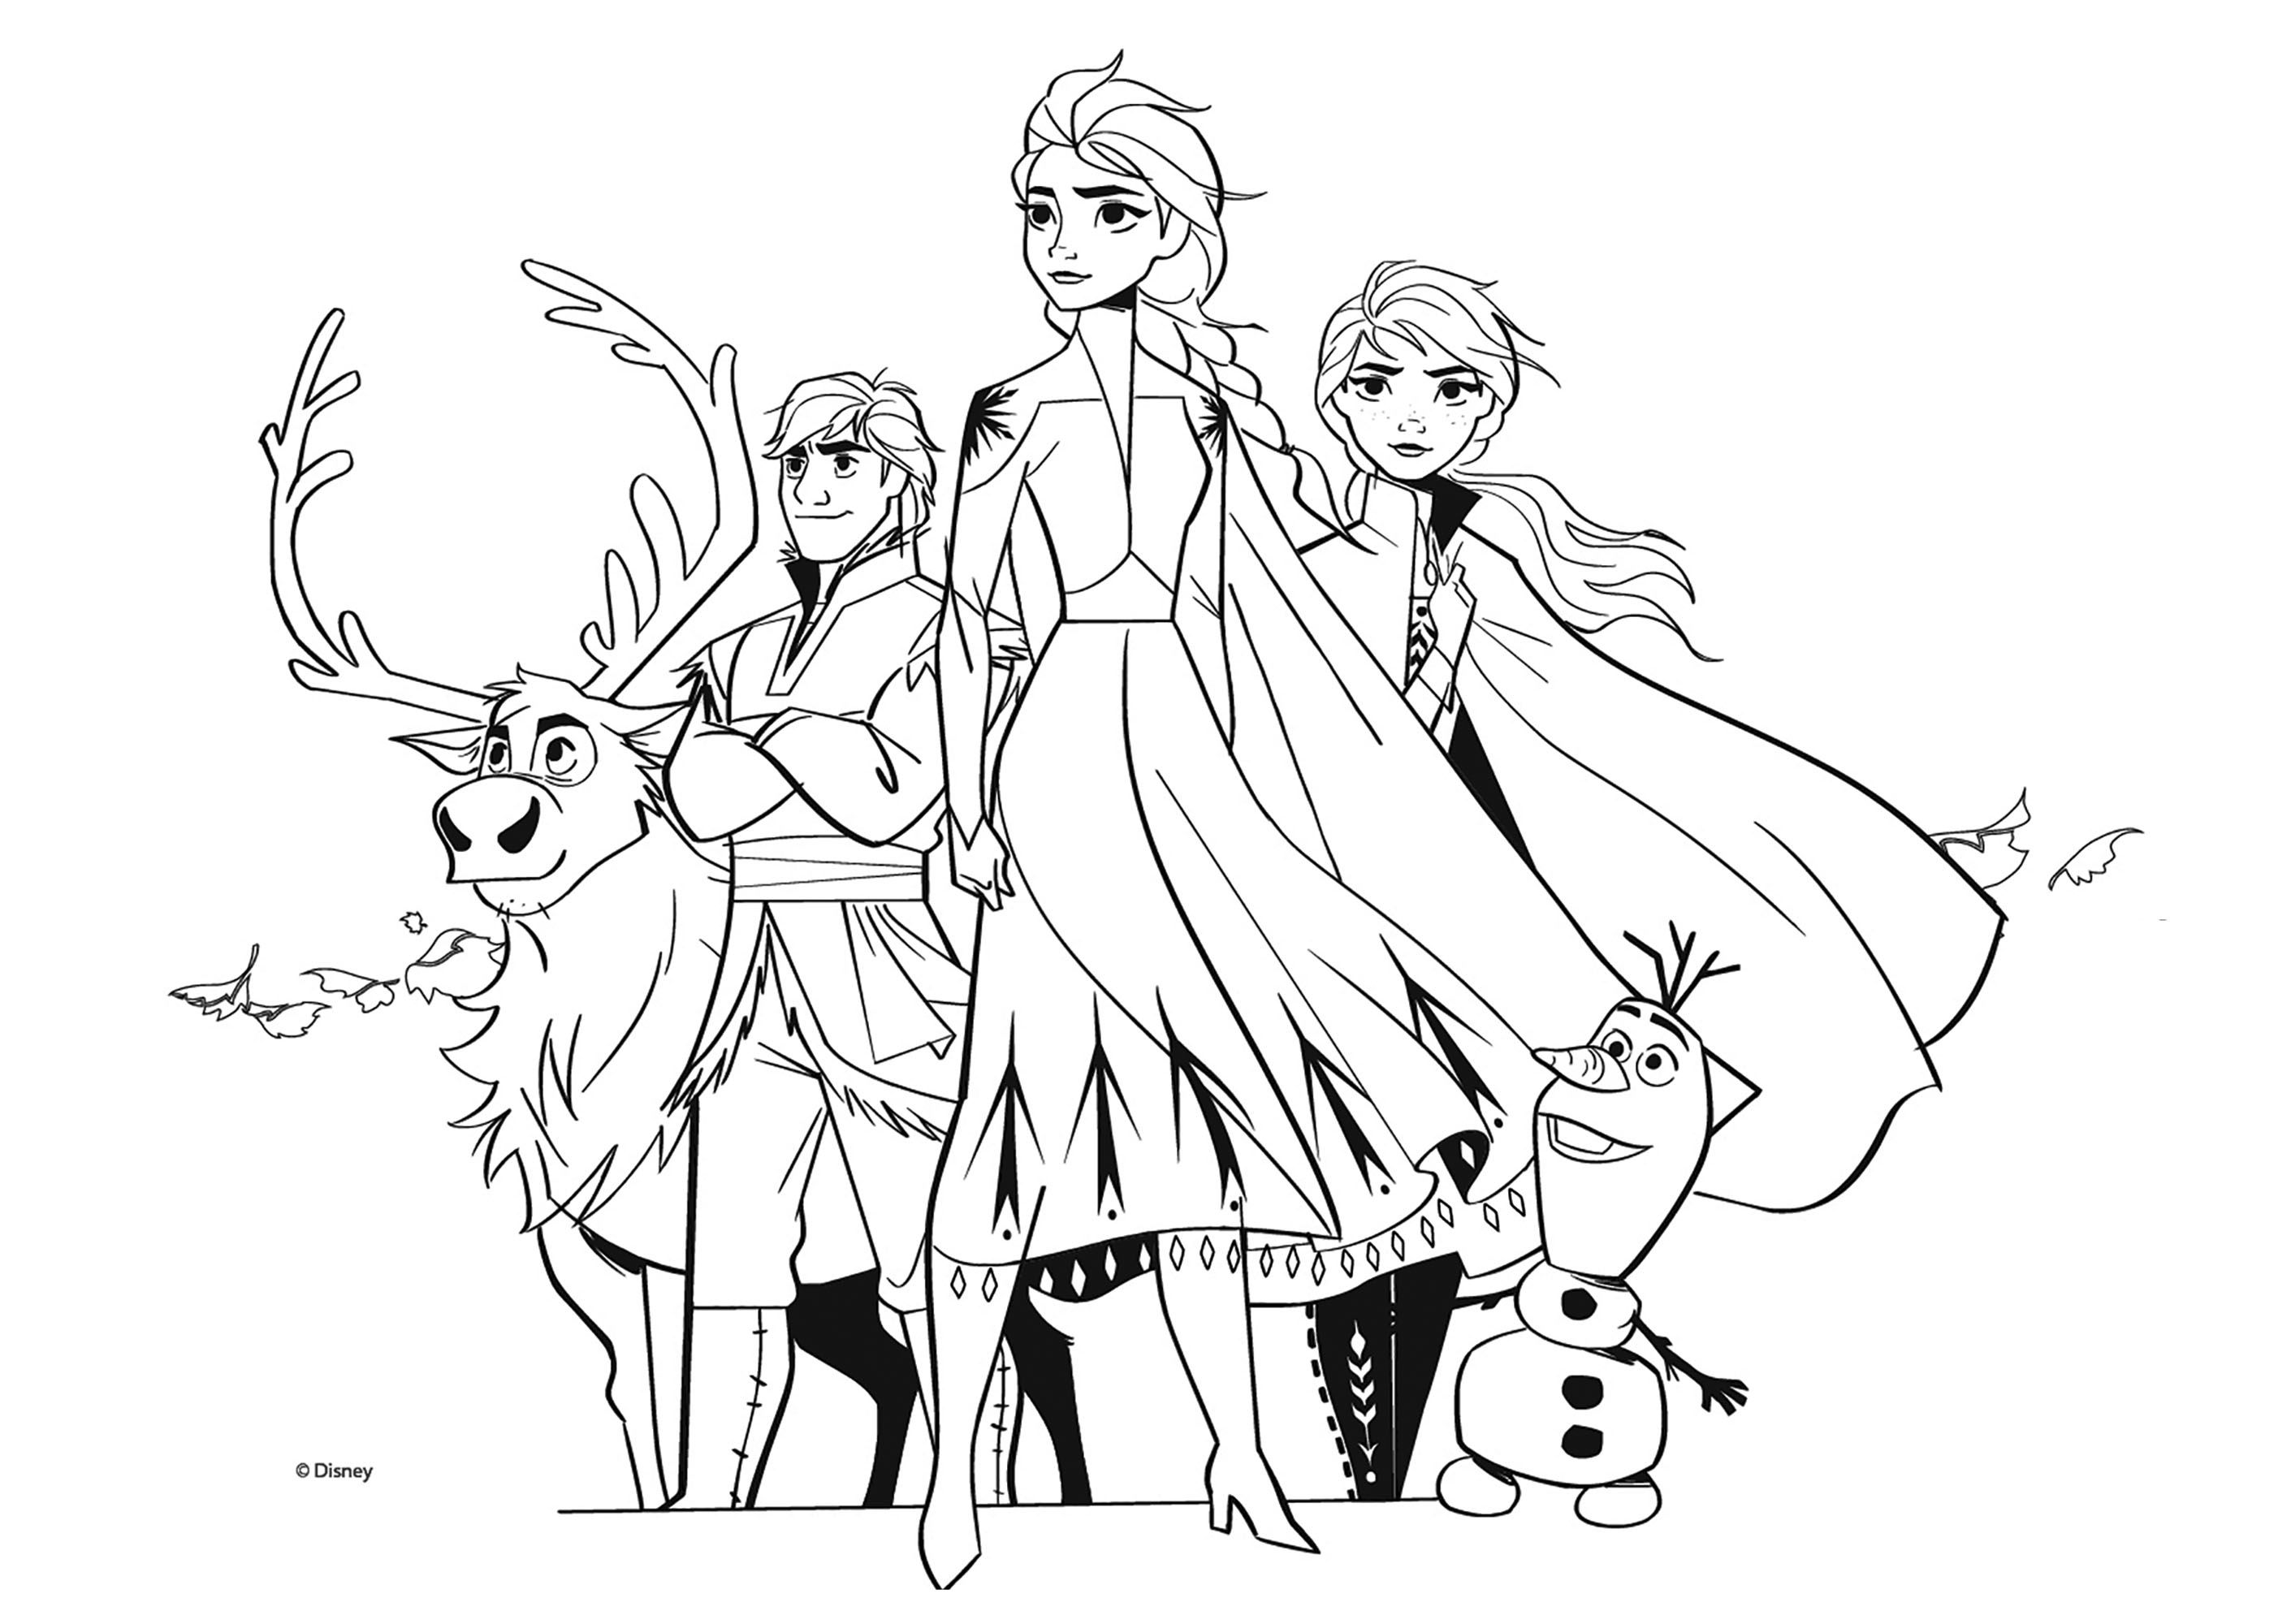 Frozen 2 To Print Simple Frozen 2 Coloring Page For Children From The Gallery Frozen 2 Just In 2020 Coloring Pages Frozen Coloring Pages Coloring Pages For Kids